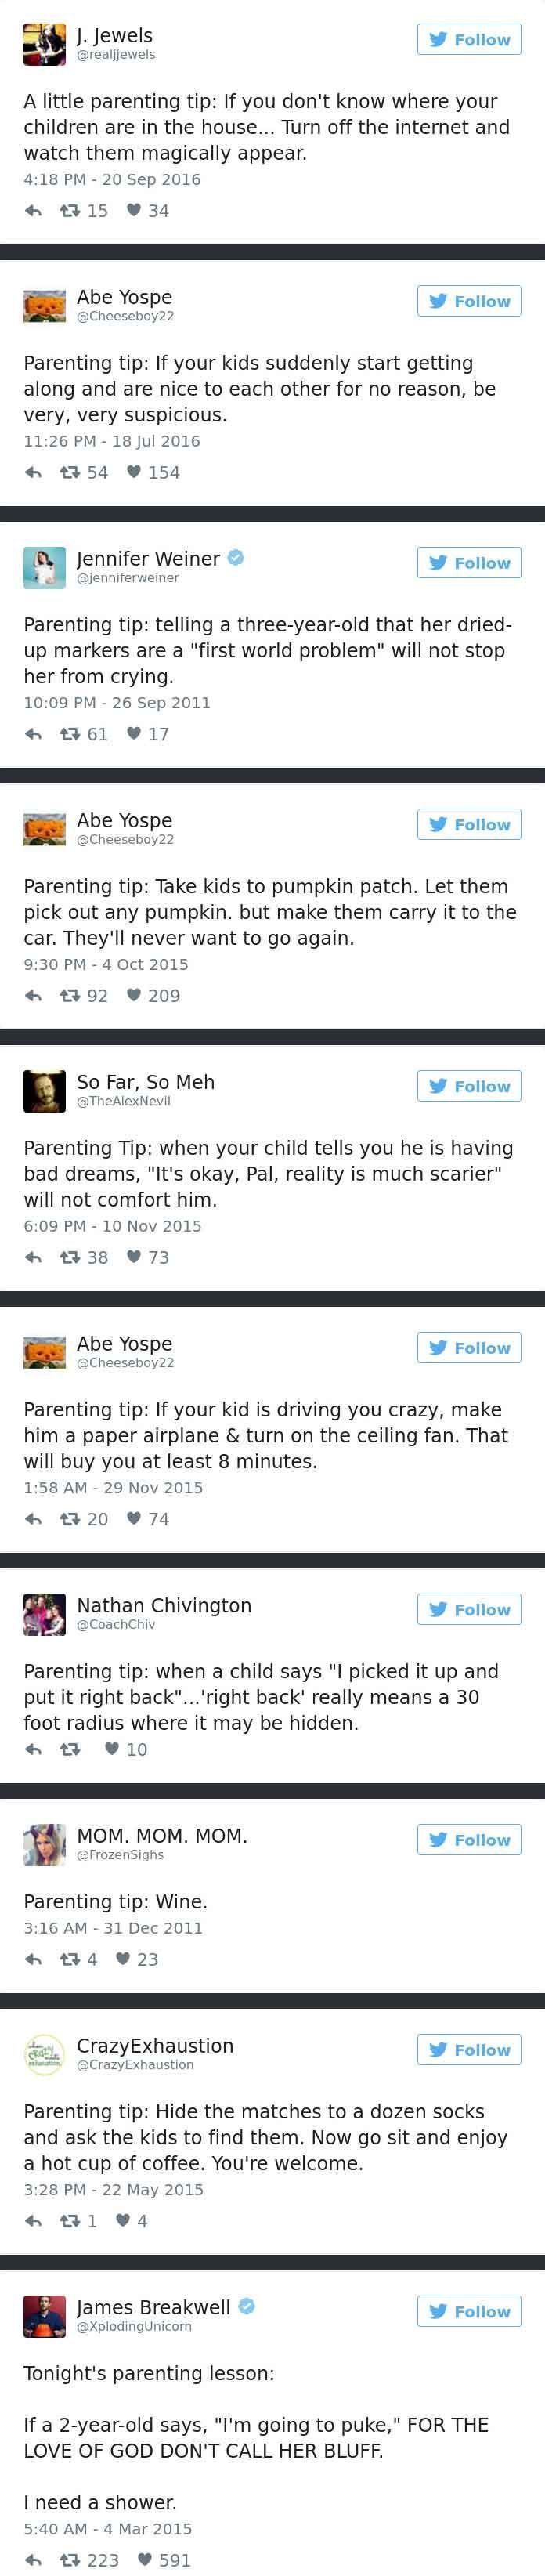 Parenting tips from moms and dads http://ibeebz.com